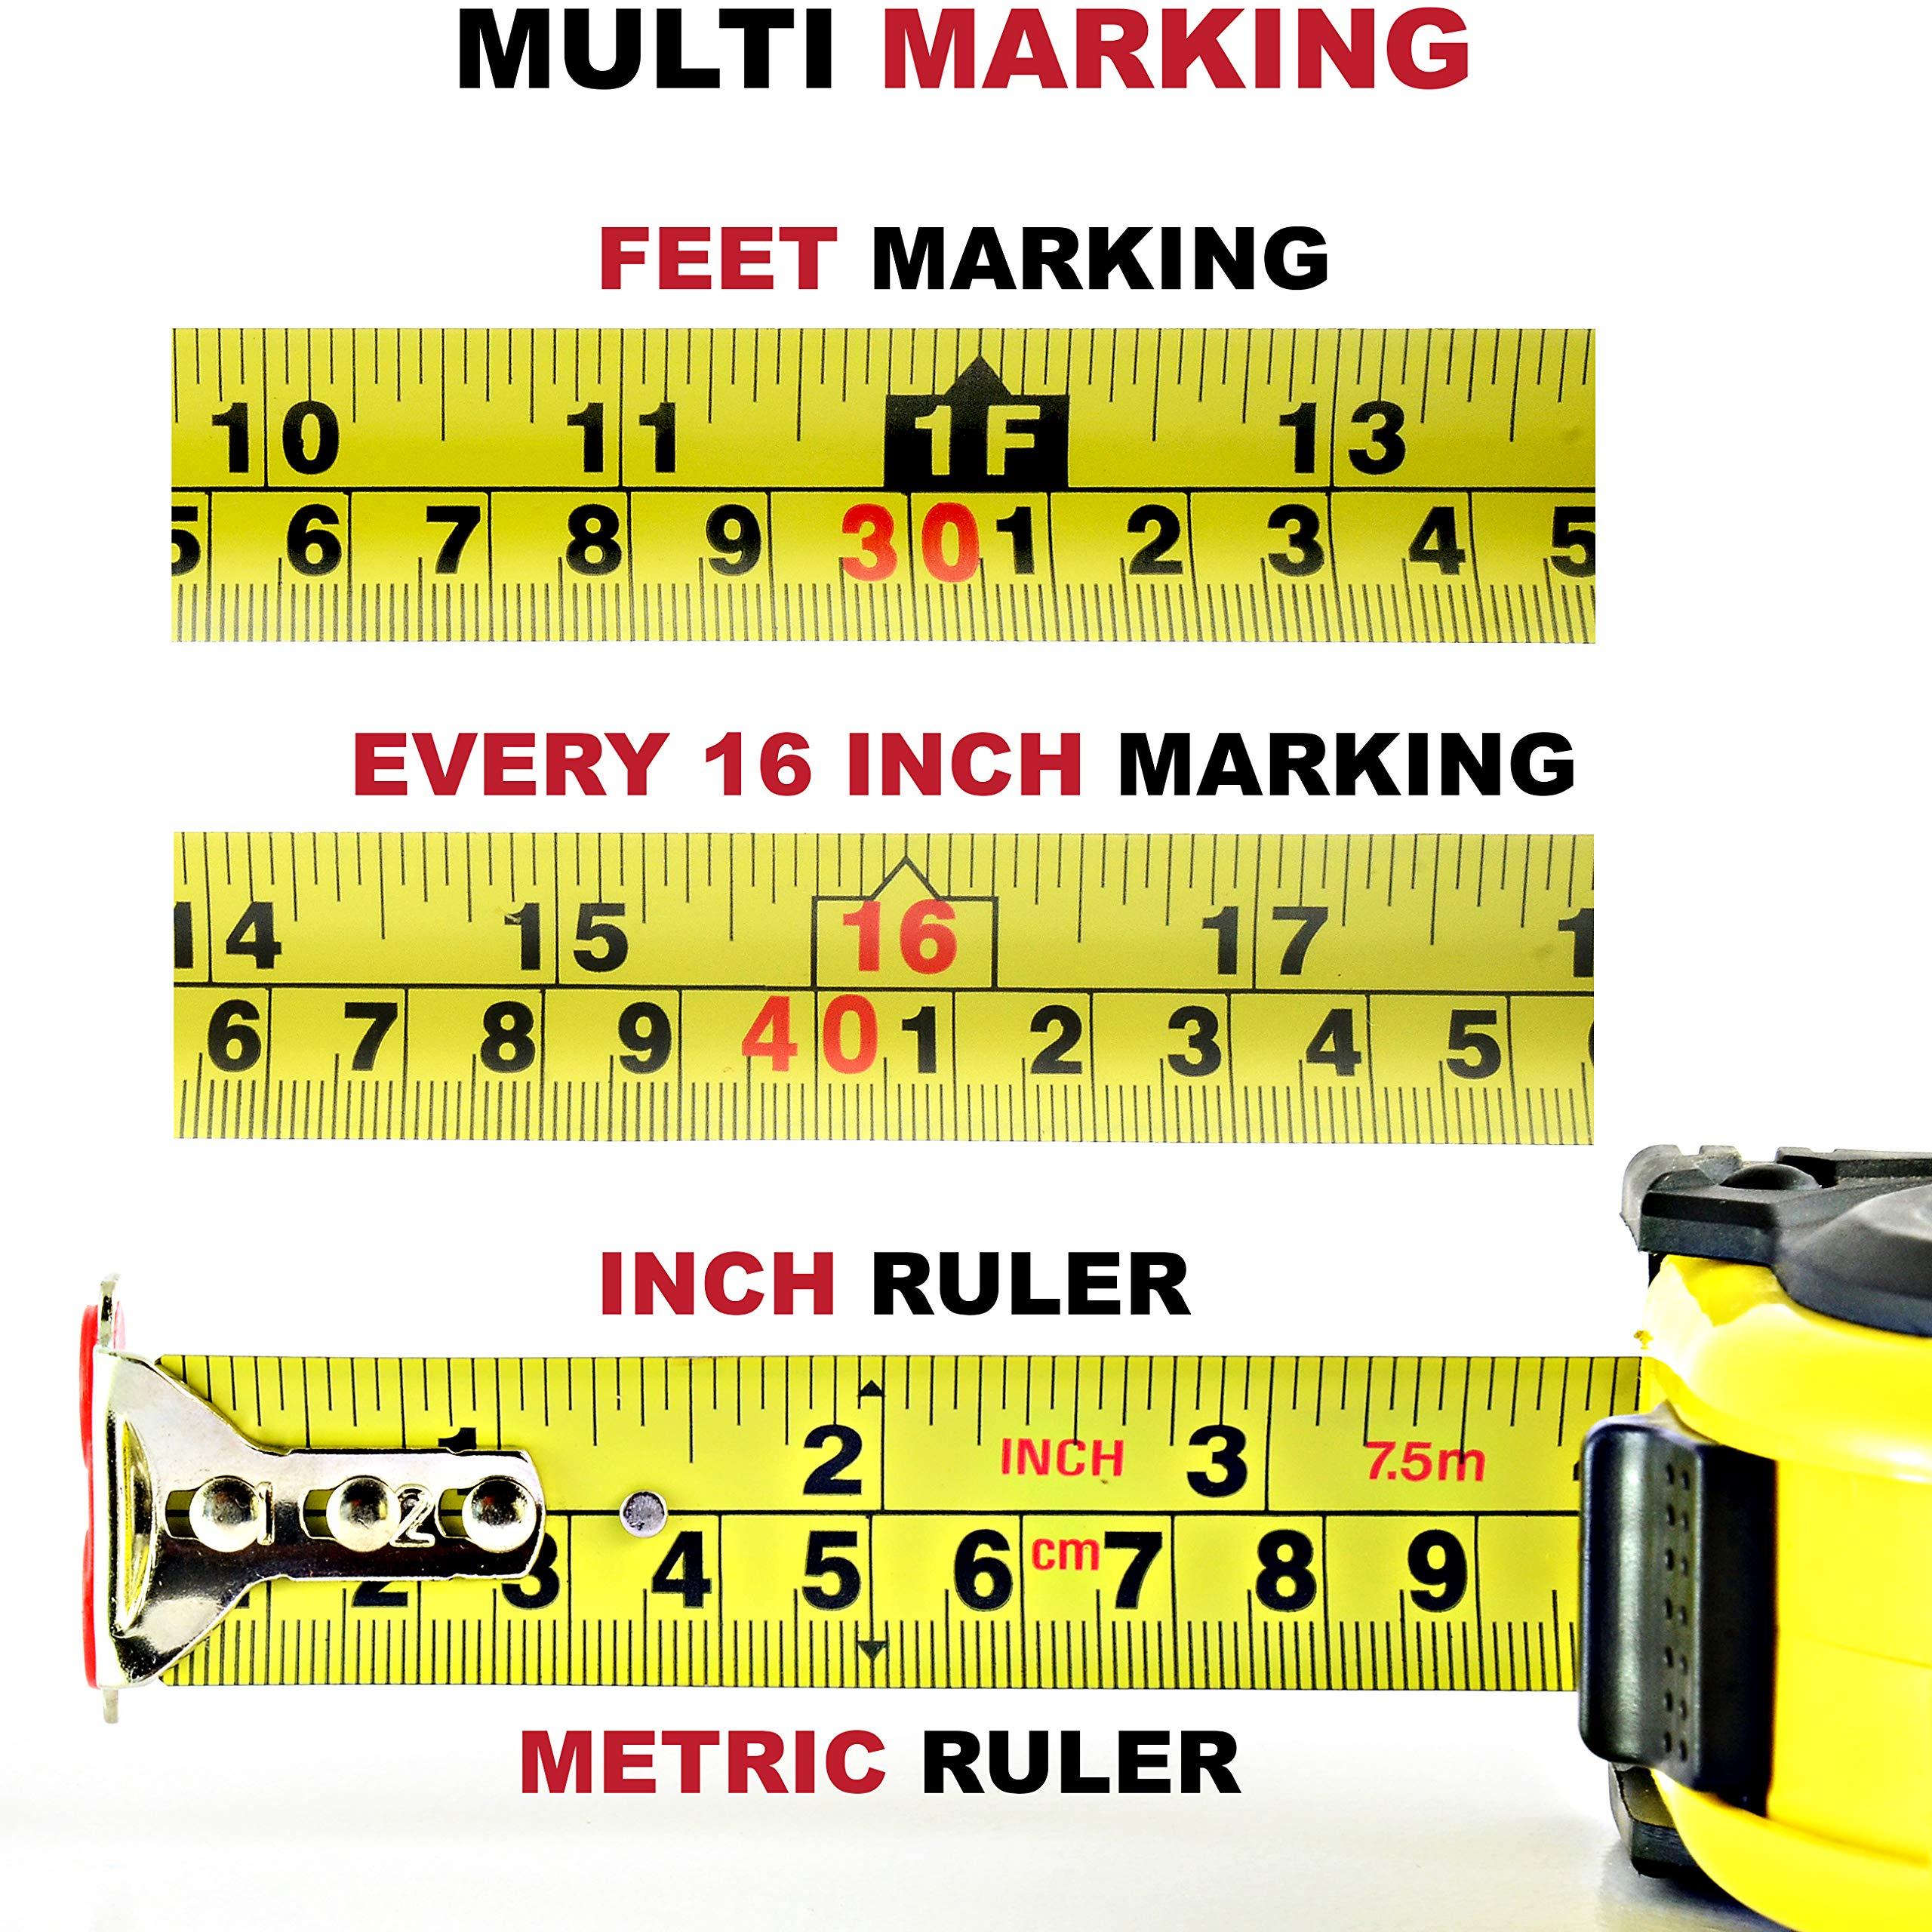 Measuring Tape Measure By Kutir - EASY TO READ 25 Foot BOTH SIDE DUAL RULER, Retractable, STURDY, Heavy Duty, MAGNETIC HOOK, Metric, Inches and Imperial Measurement, SHOCK ABSORBENT Solid Rubber Case by Kutir (Image #5)